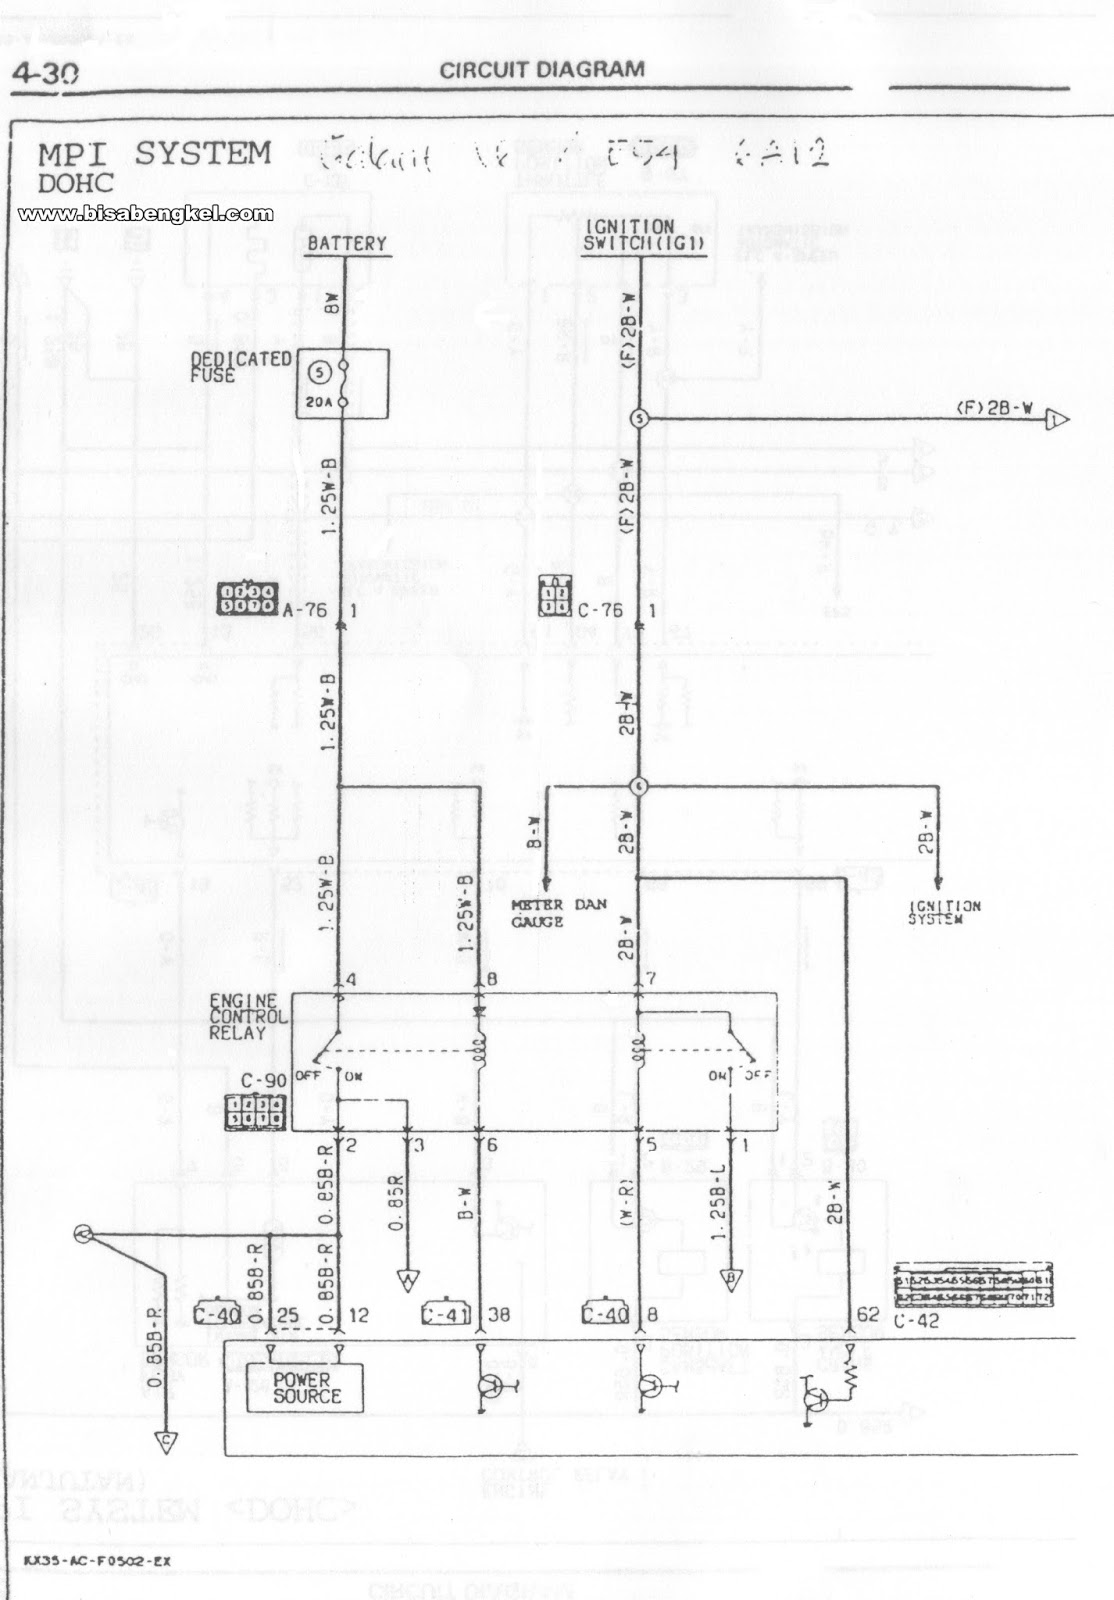 small resolution of mitsubishi eterna v6 wiring diagram wiring diagram blogs rh 11 2 restaurant freinsheimer hof de mitsubishi eclipse wiring diagram 95 mitsubishi galant